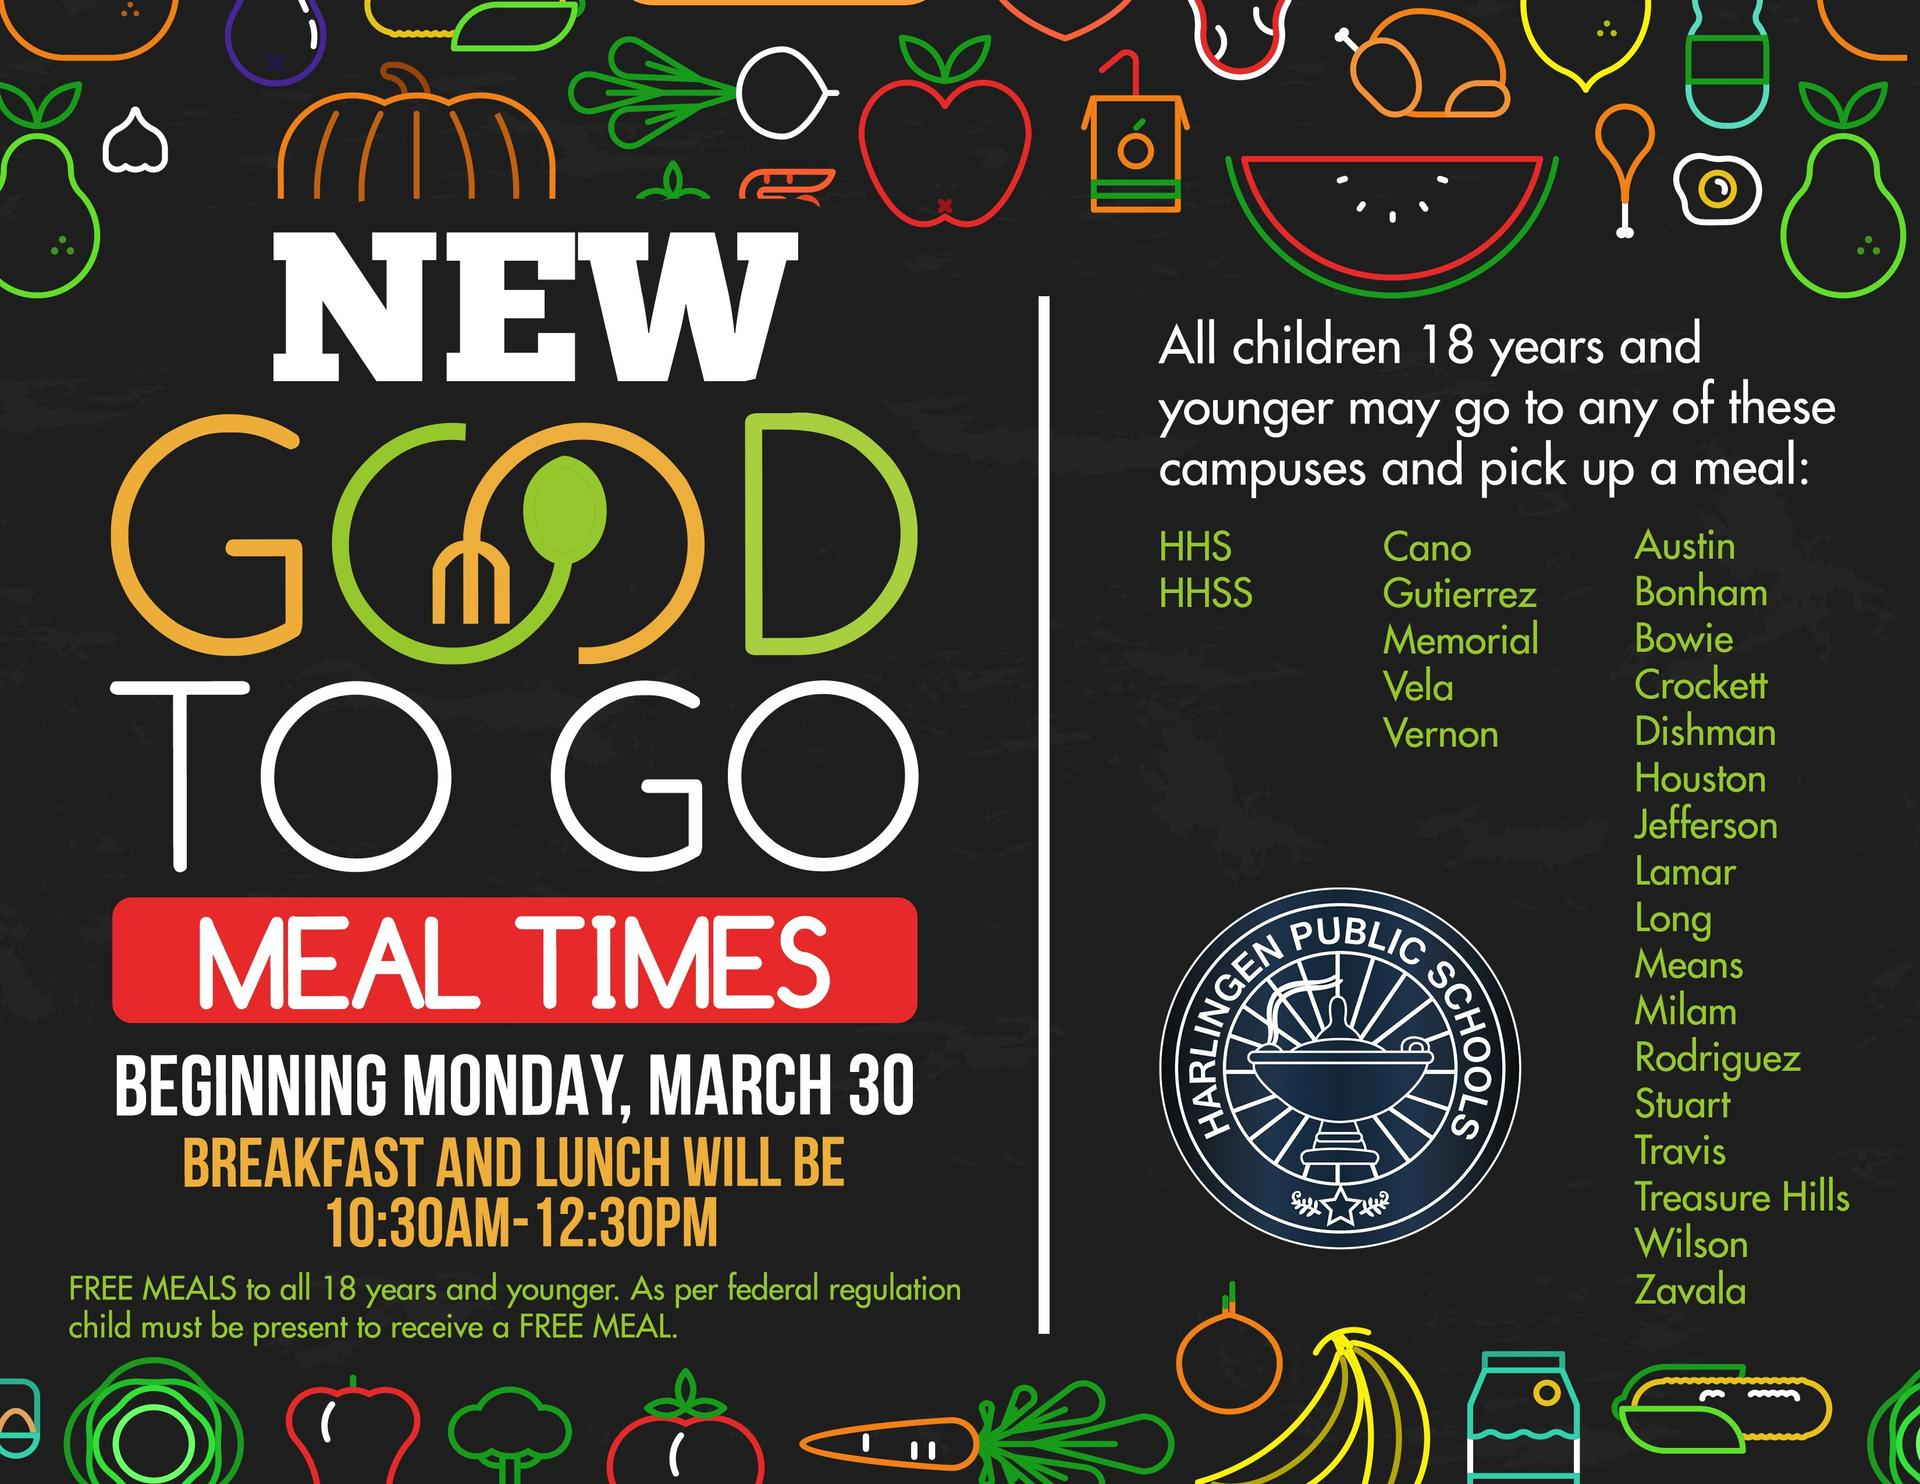 Good to Go meals for students continue this week